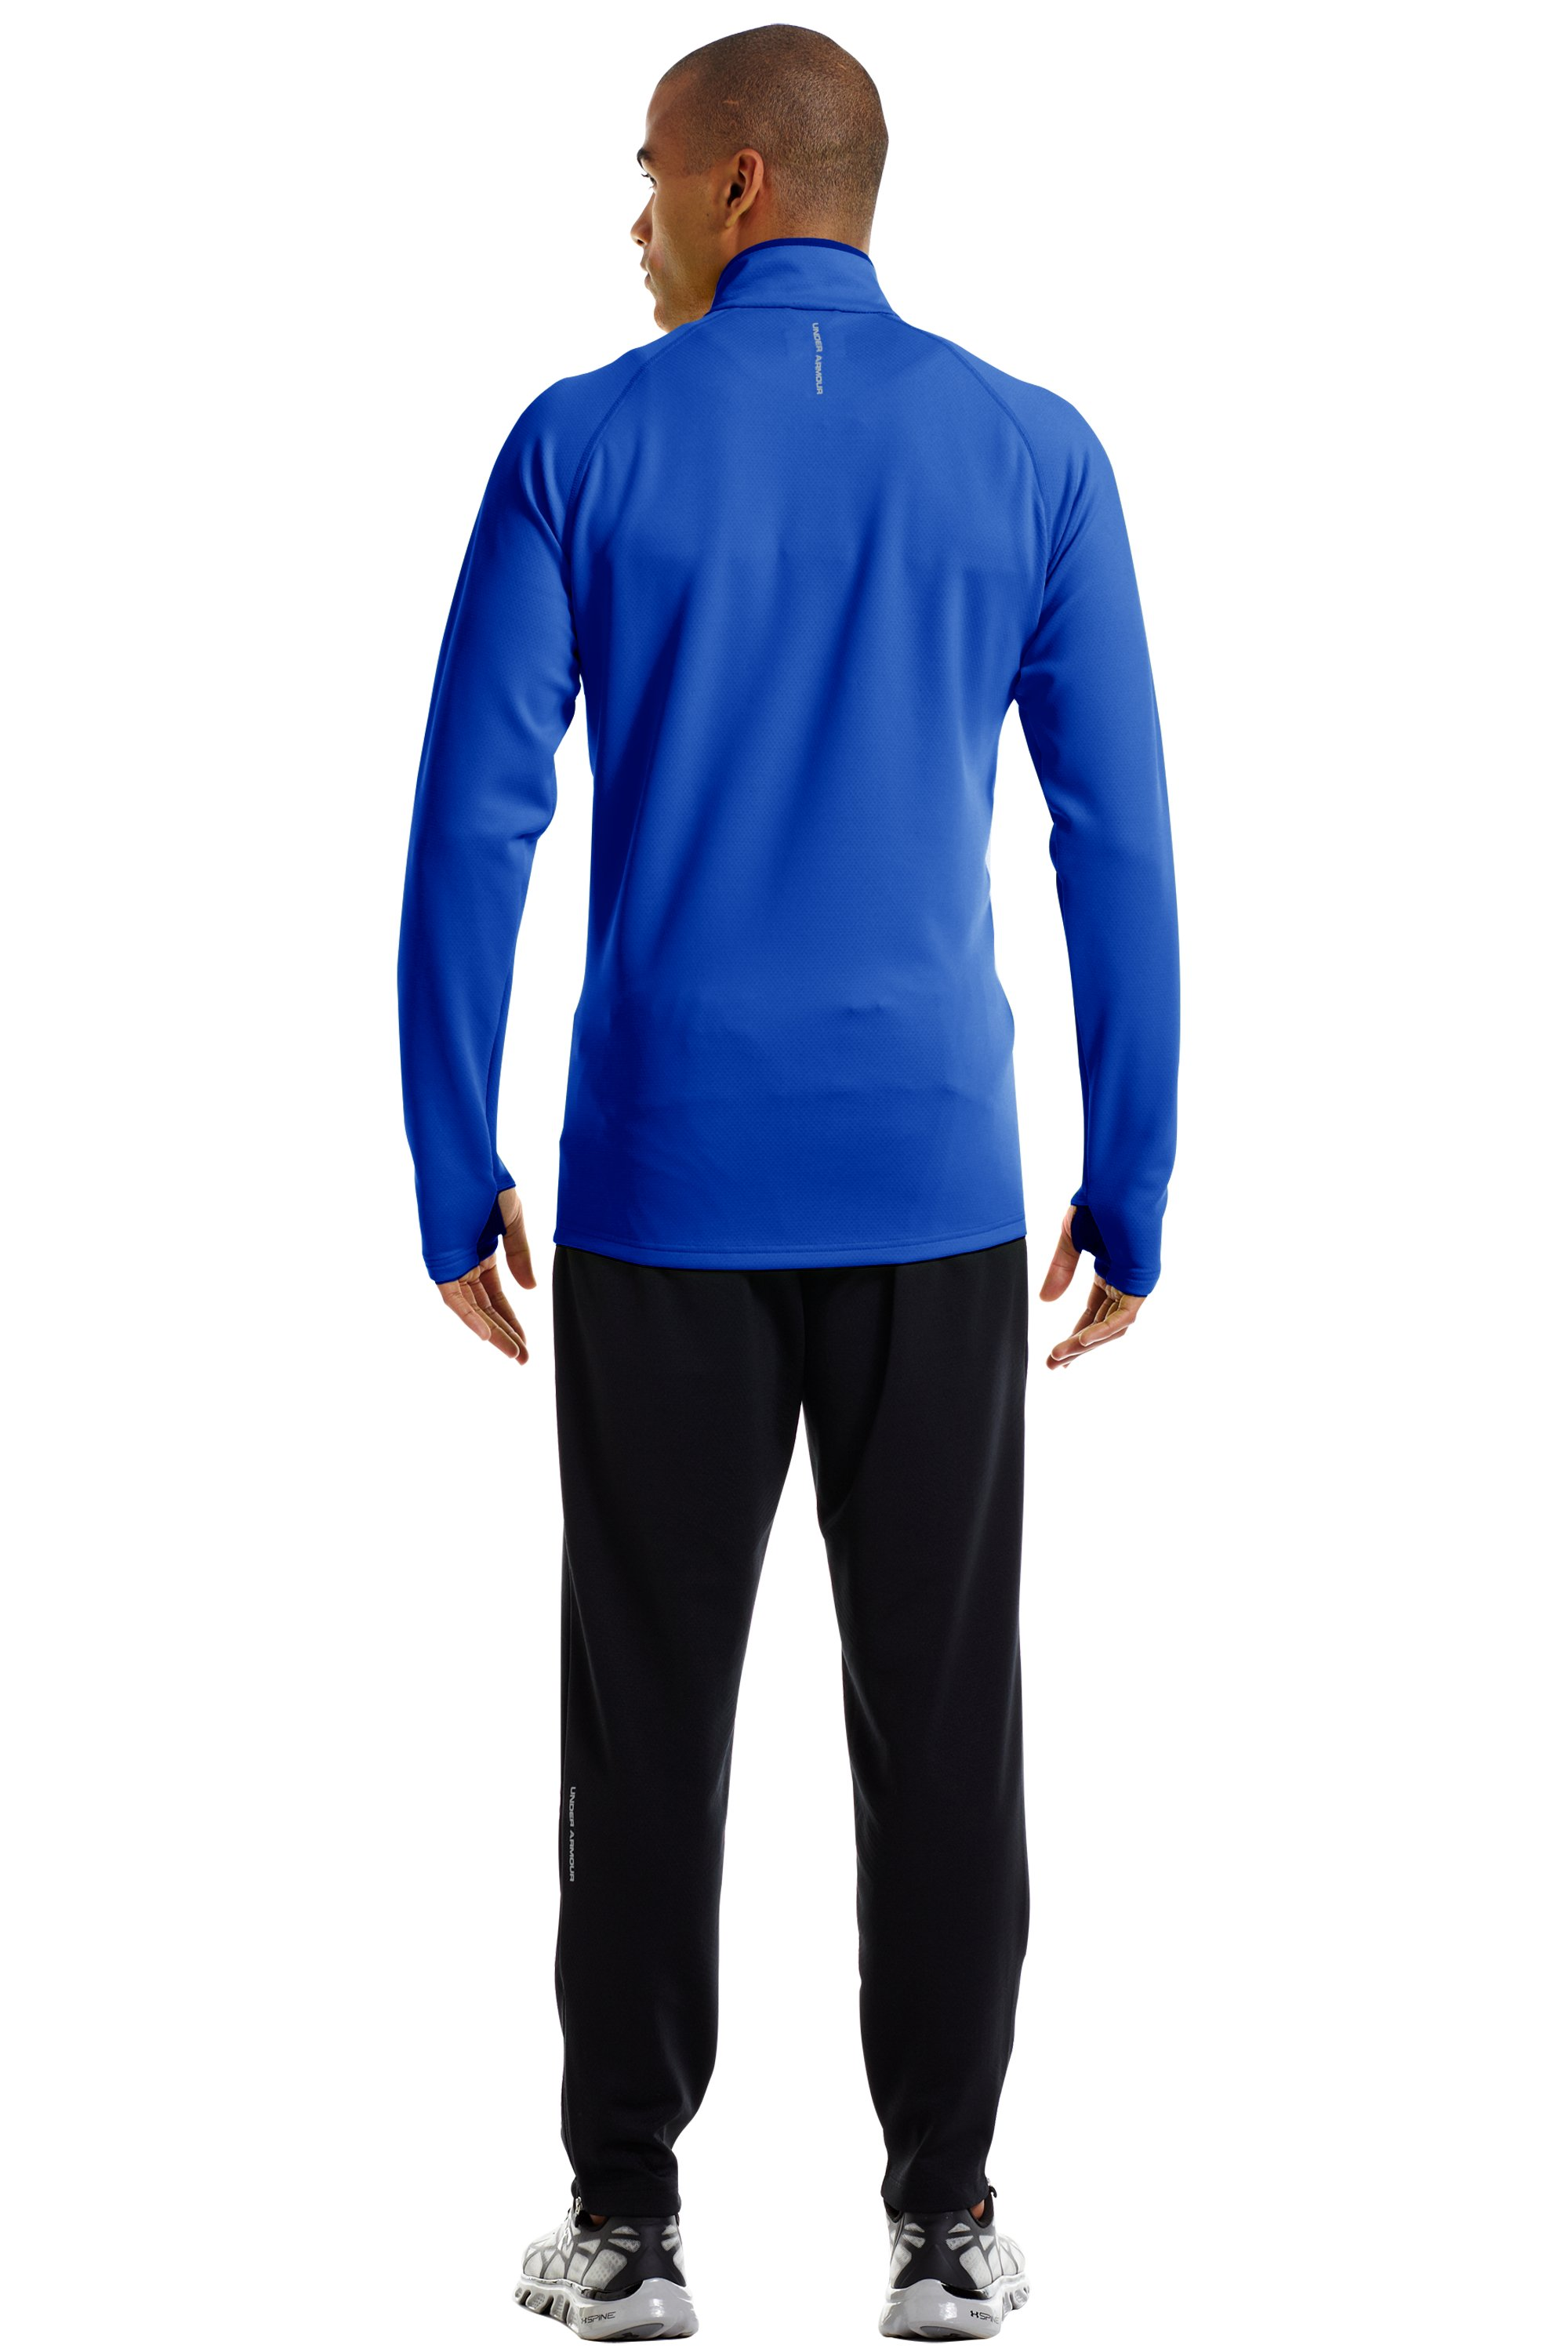 Men's ColdGear® Thermo Run ¼ Zip, Moon Shadow, Back